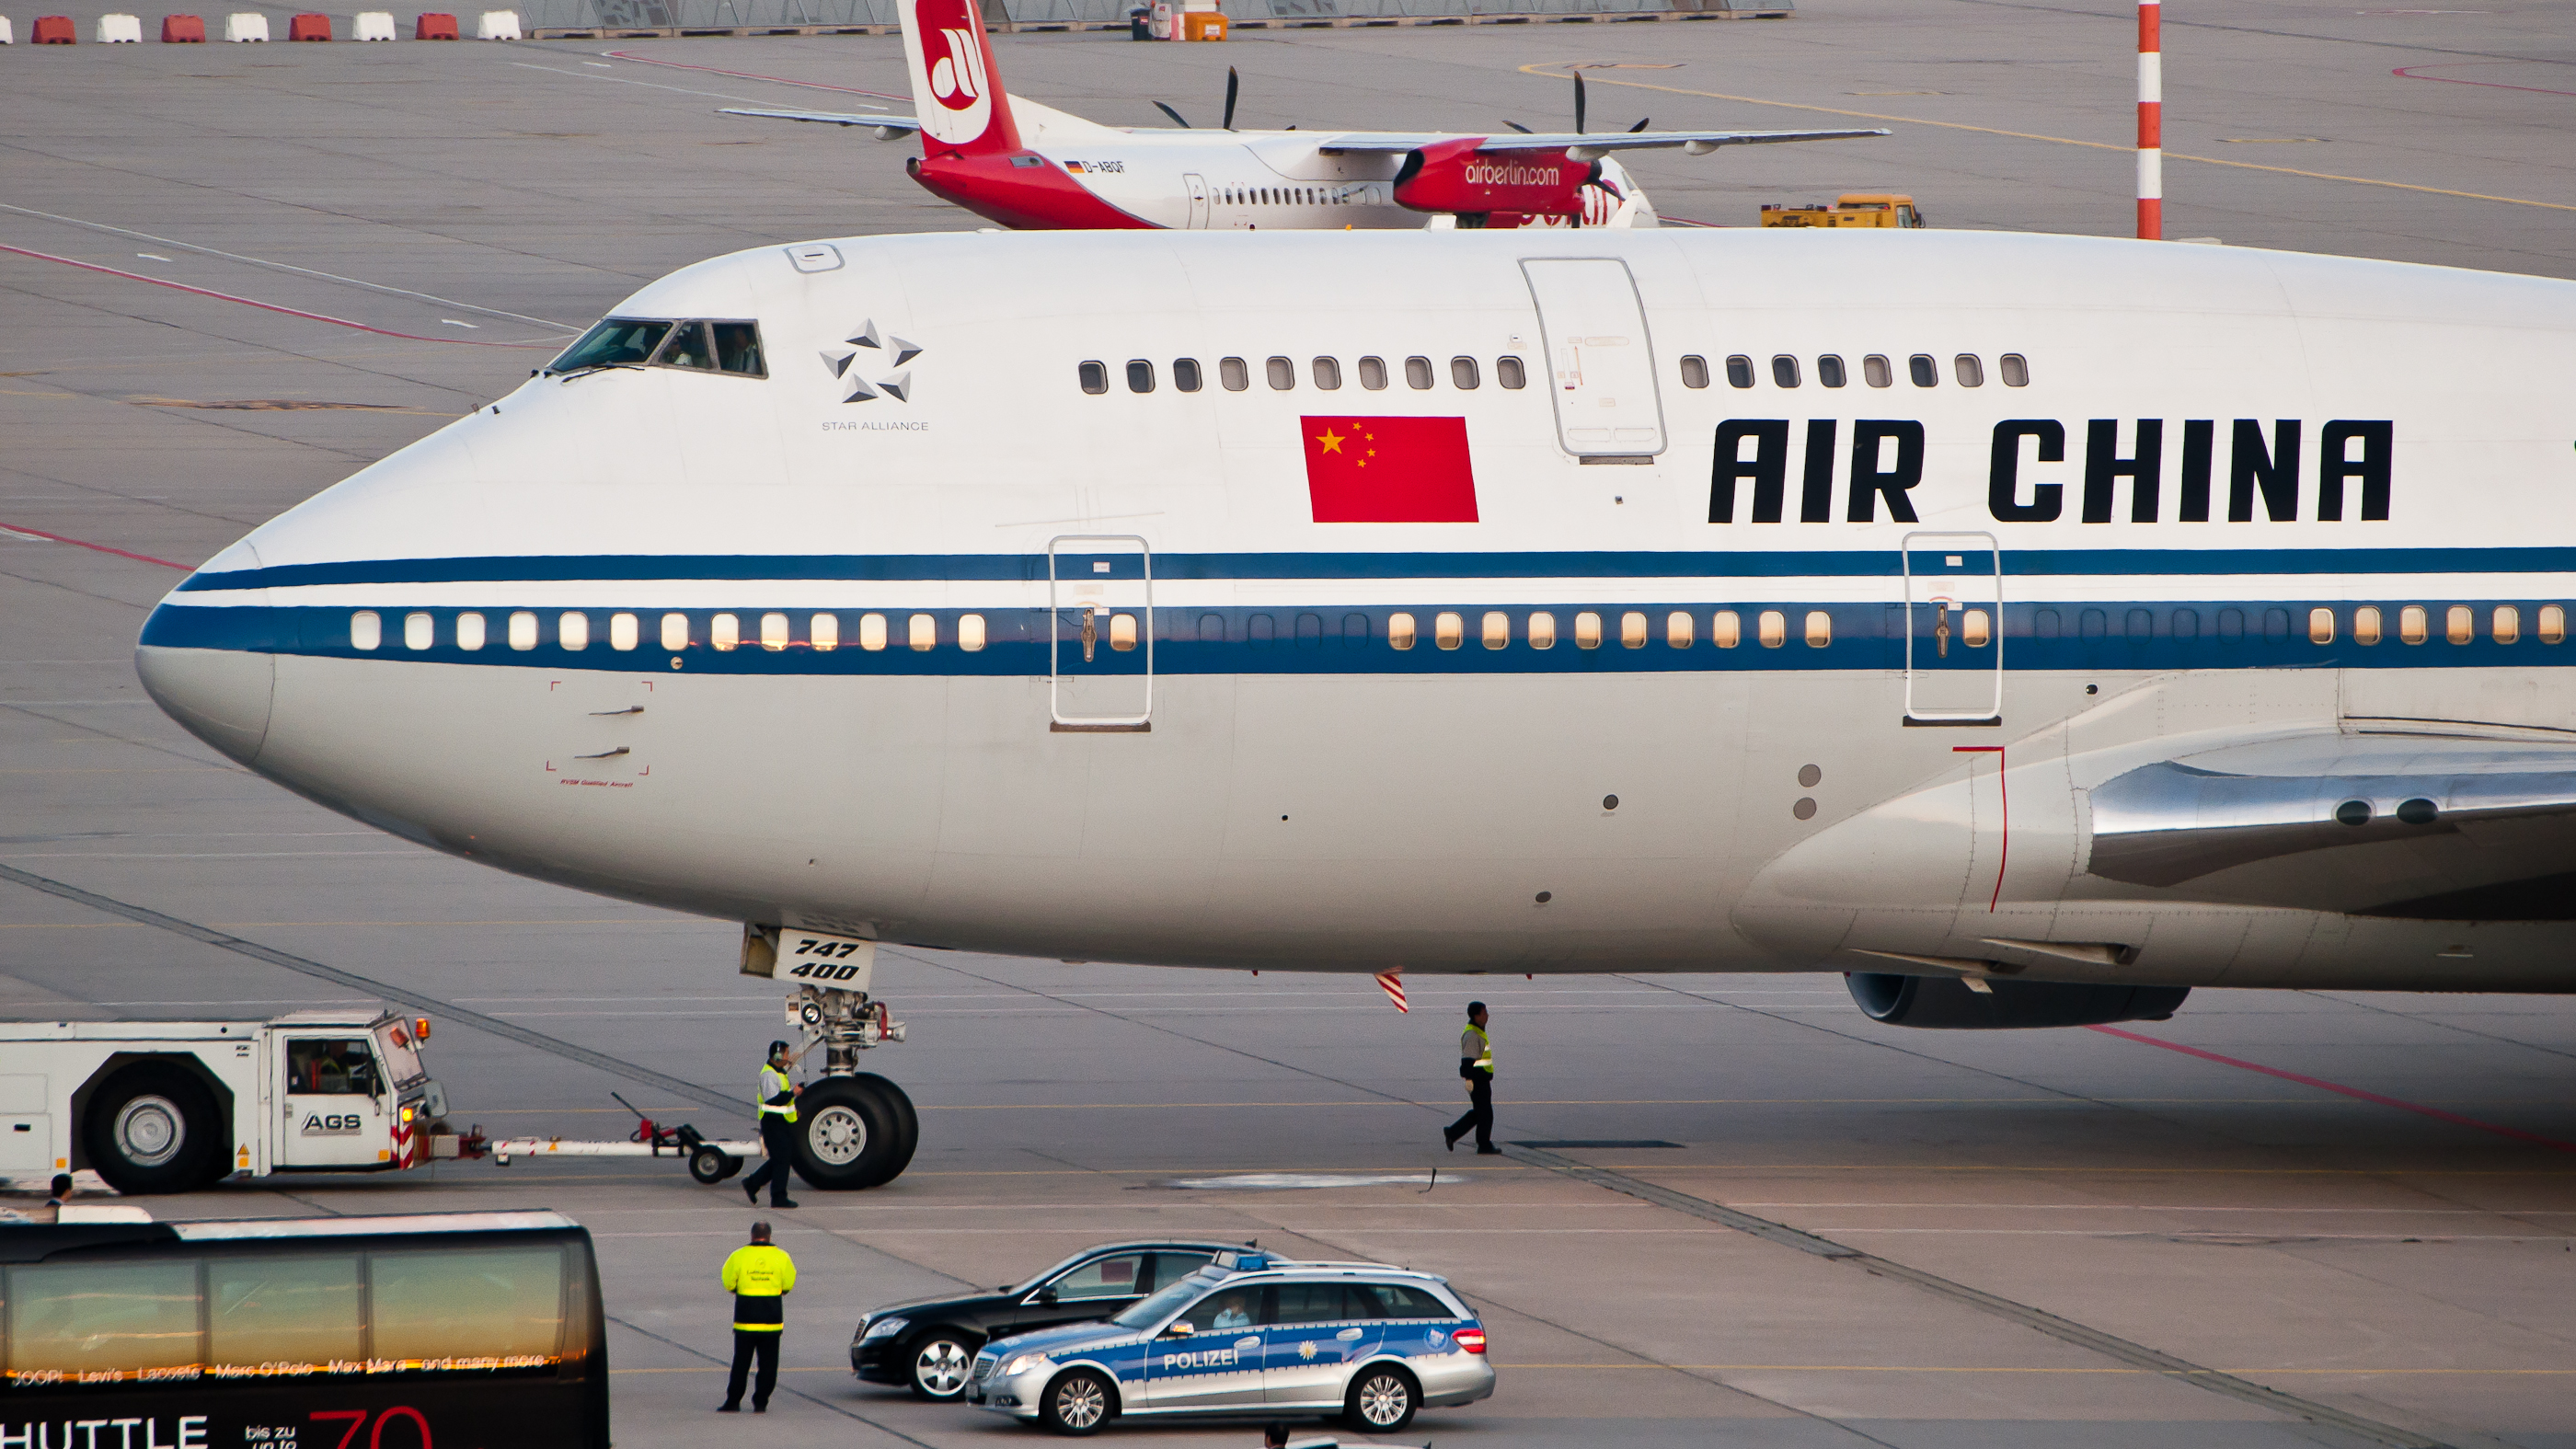 File:Air China B747-4J6 B-2447 EDDS 01.jpg